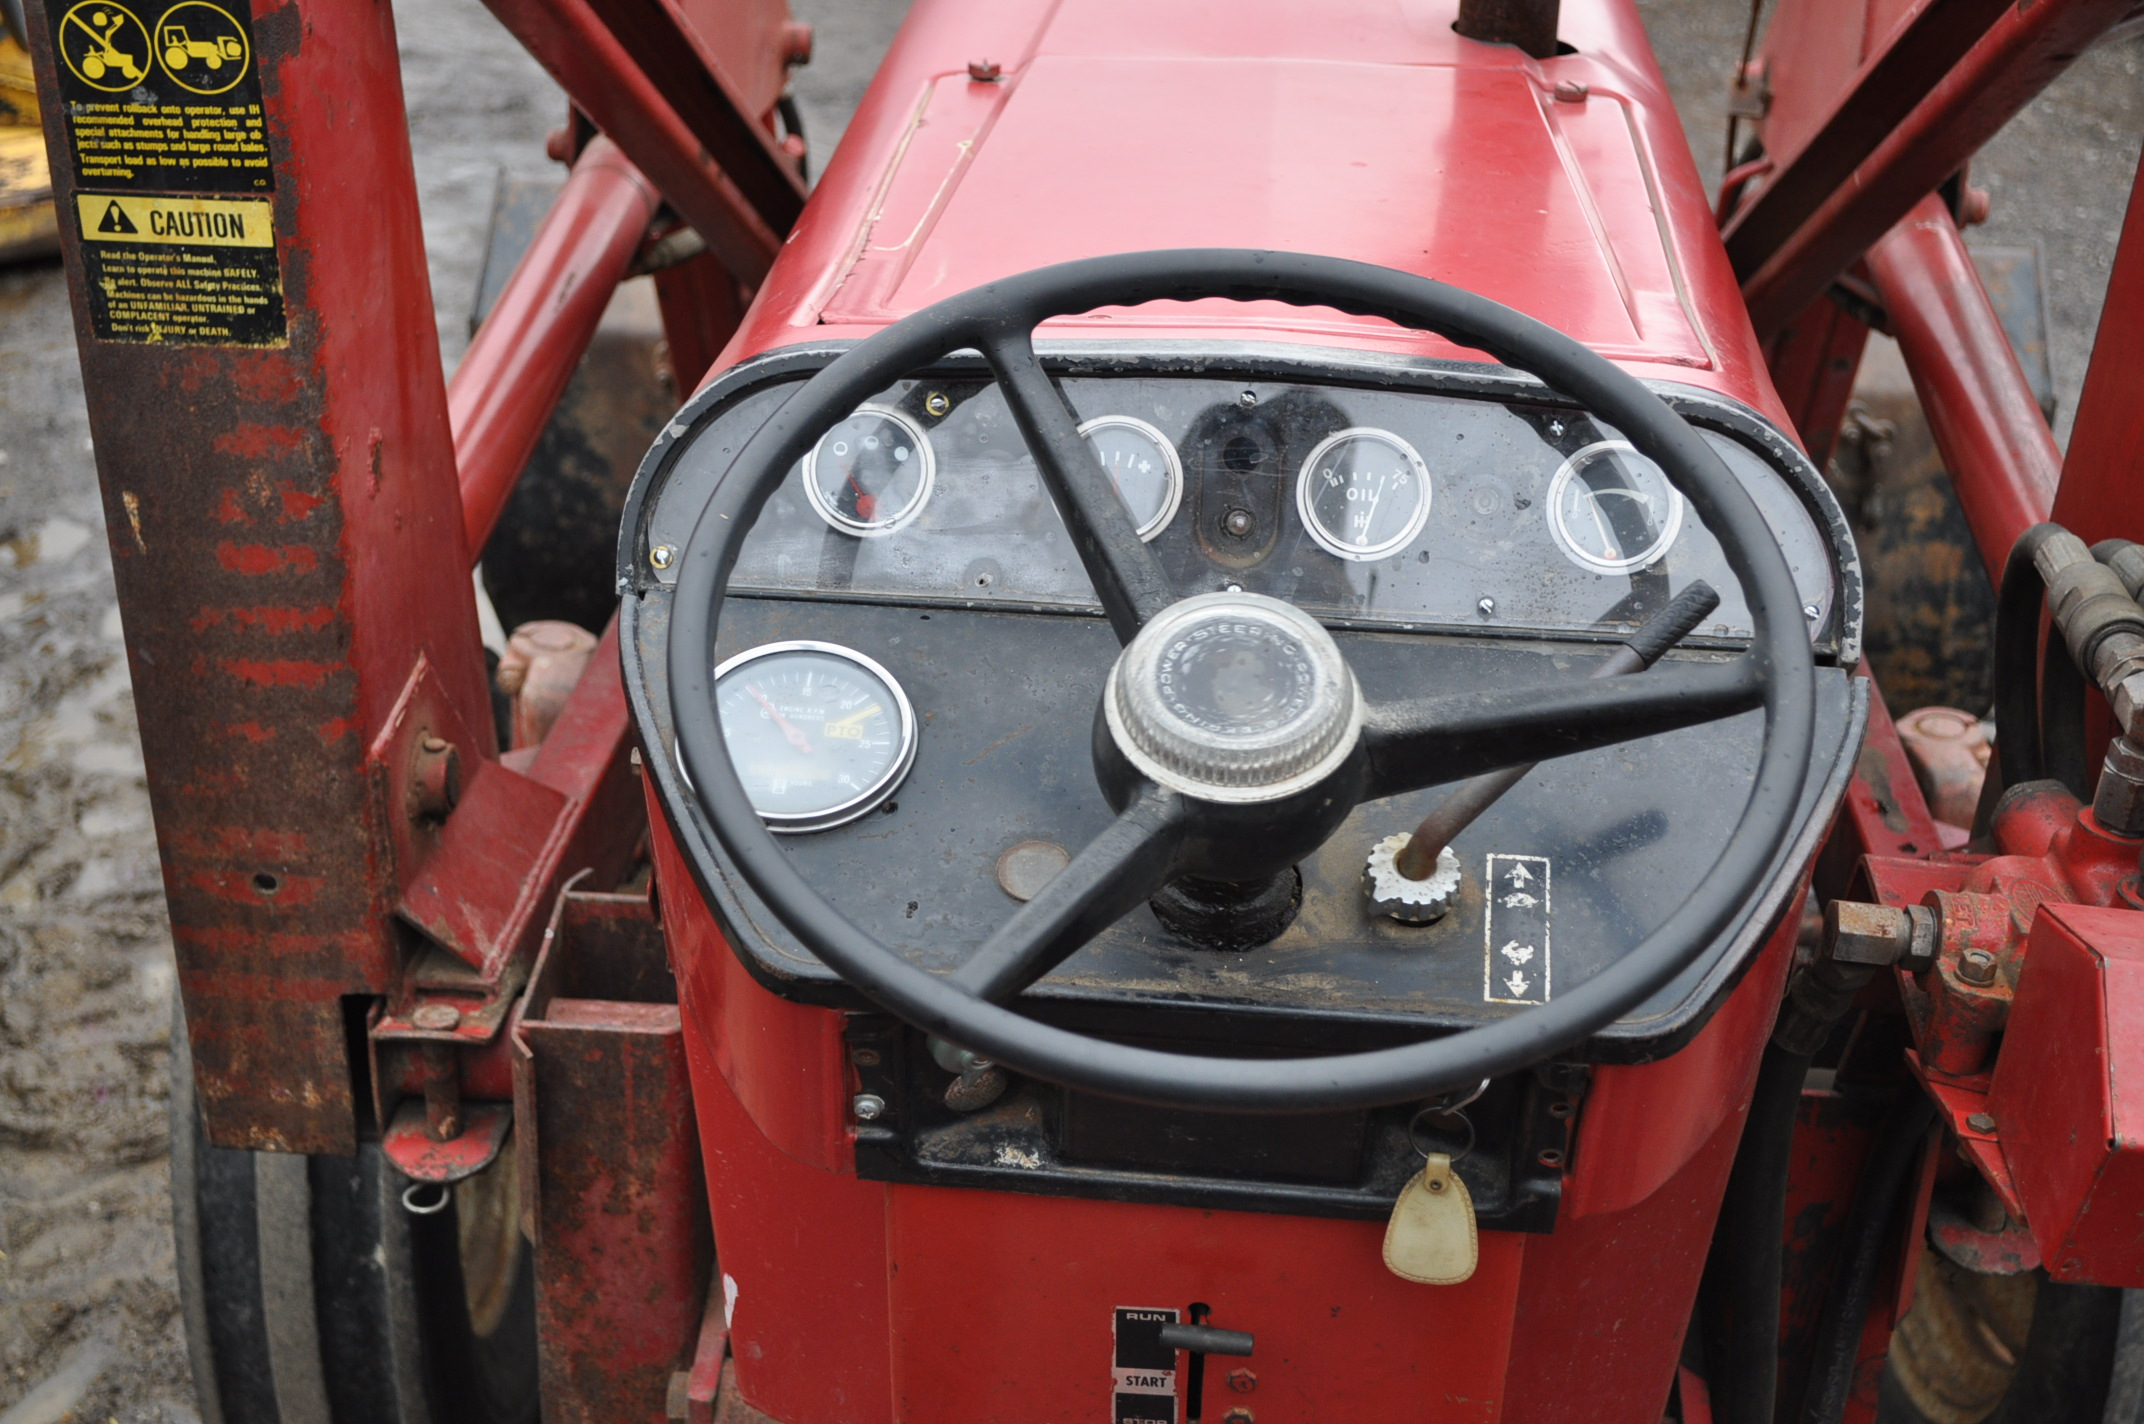 International 674 tractor, 16.9-30 rear, 7.50-16 front, diesel, single hyd, 3pt, 540 PTO, sells with - Image 11 of 16